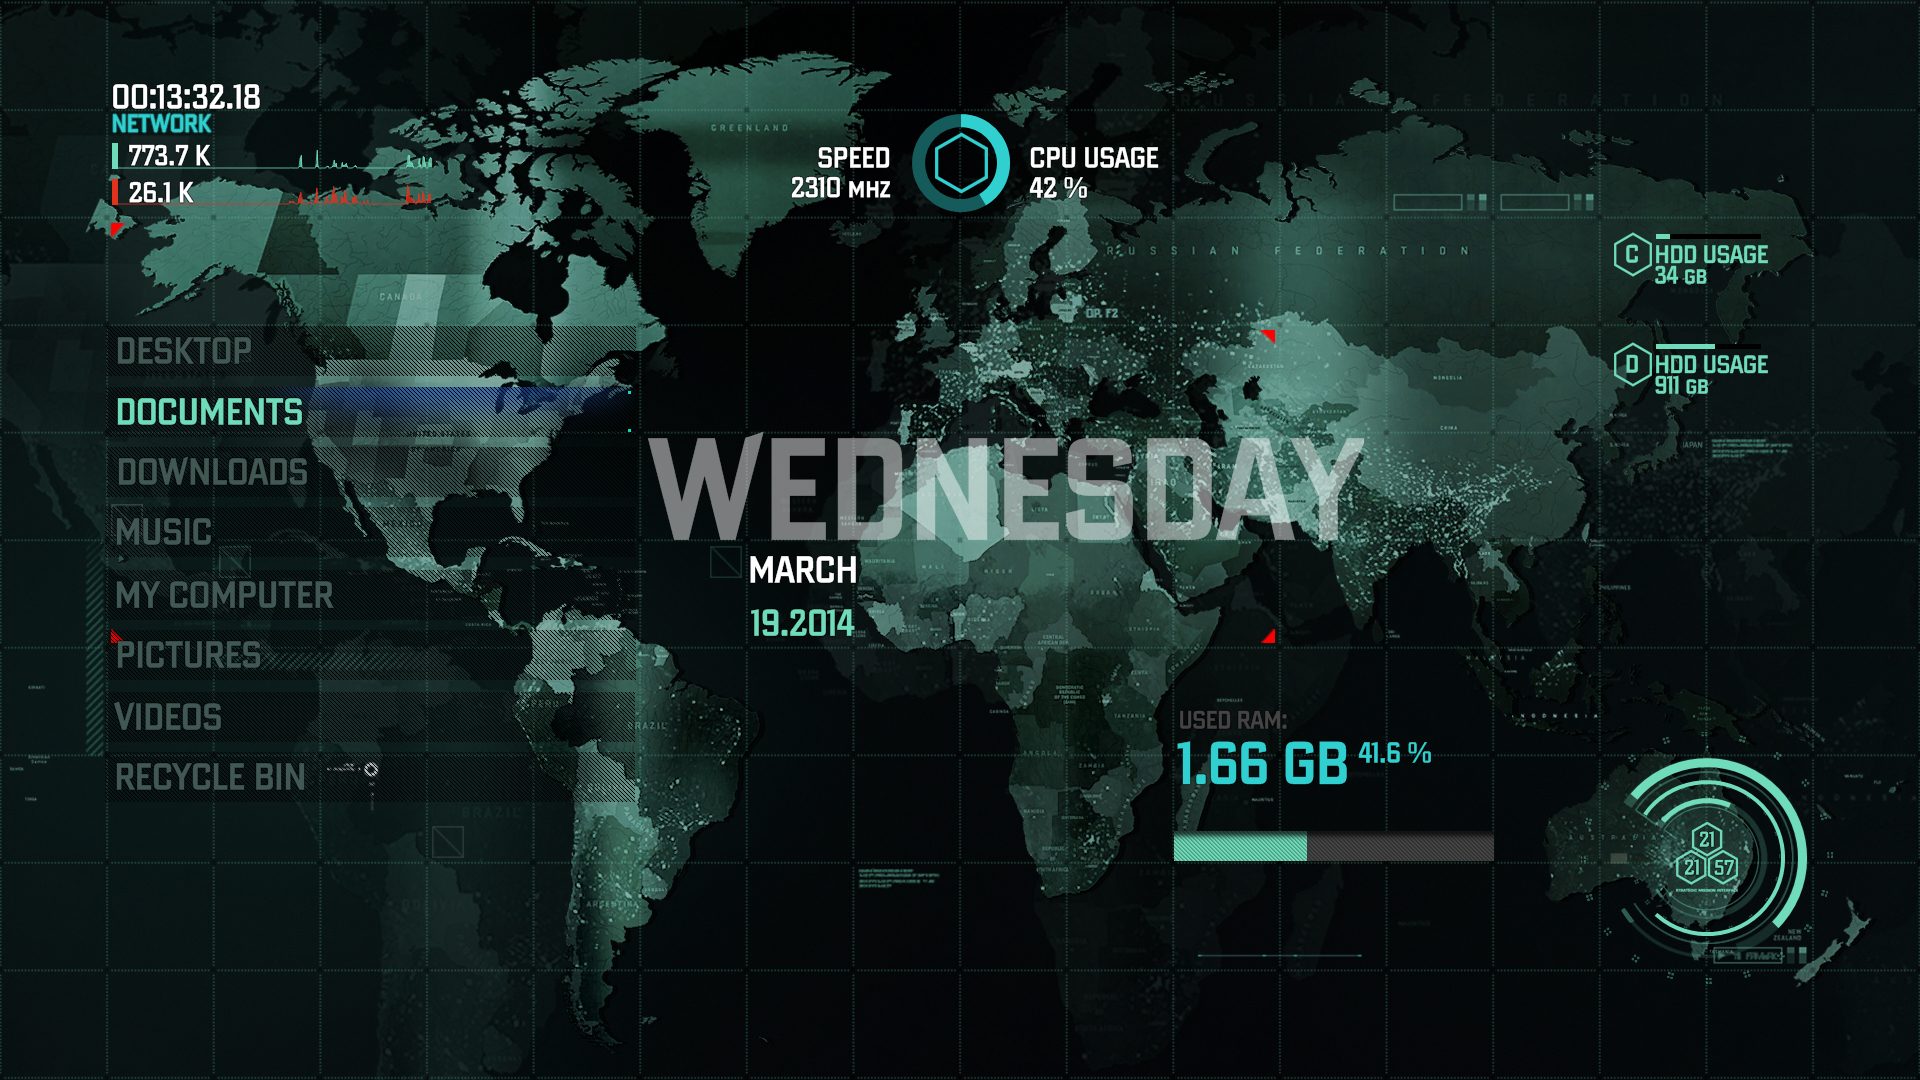 Mw3 3d Wallpapers Strategic Mission Interface By Dart A On Deviantart